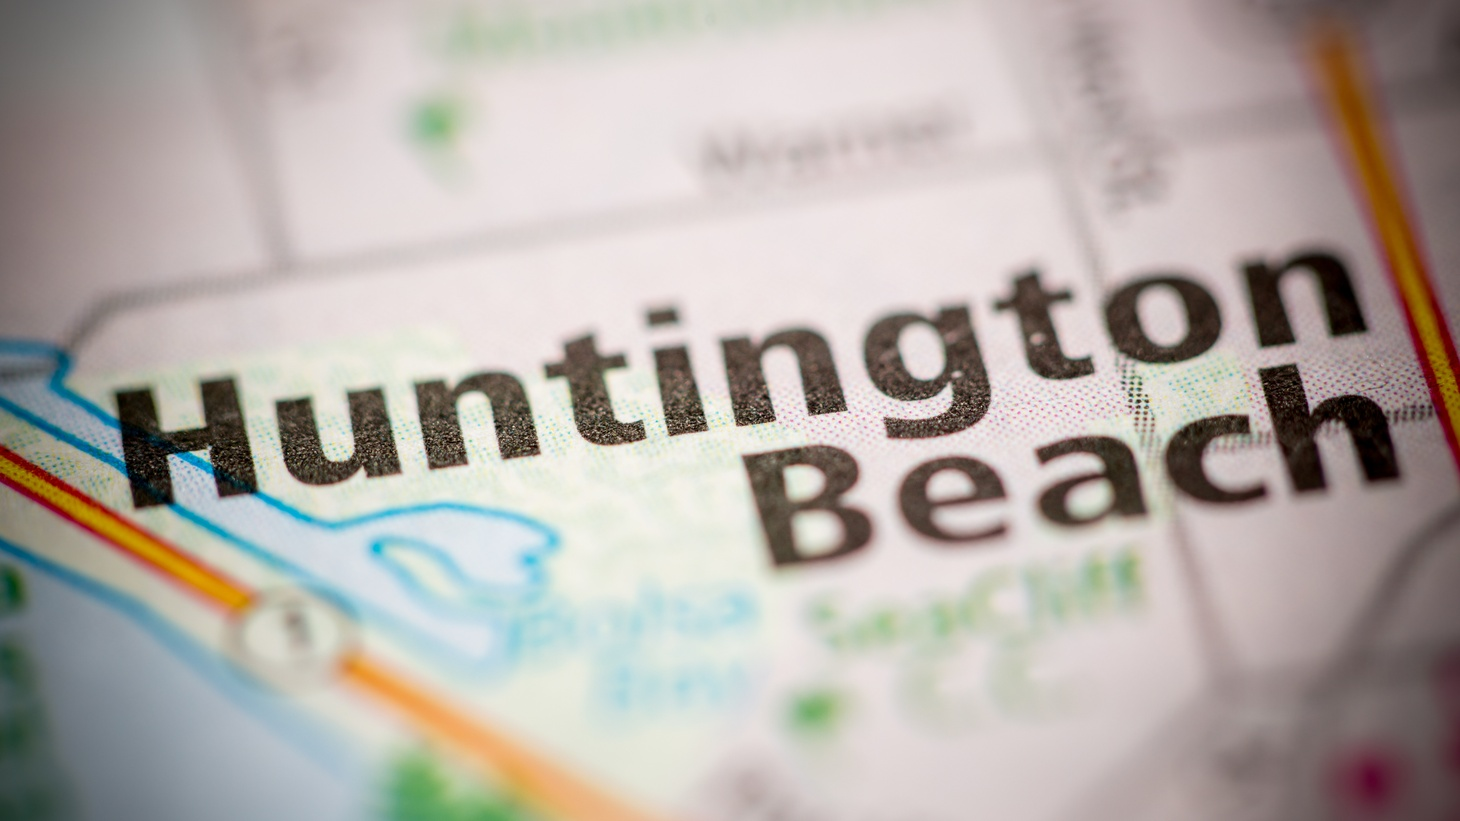 In Huntington Beach, the City Council has 60 days to appoint someone to replace Tito Ortiz as mayor pro tem.